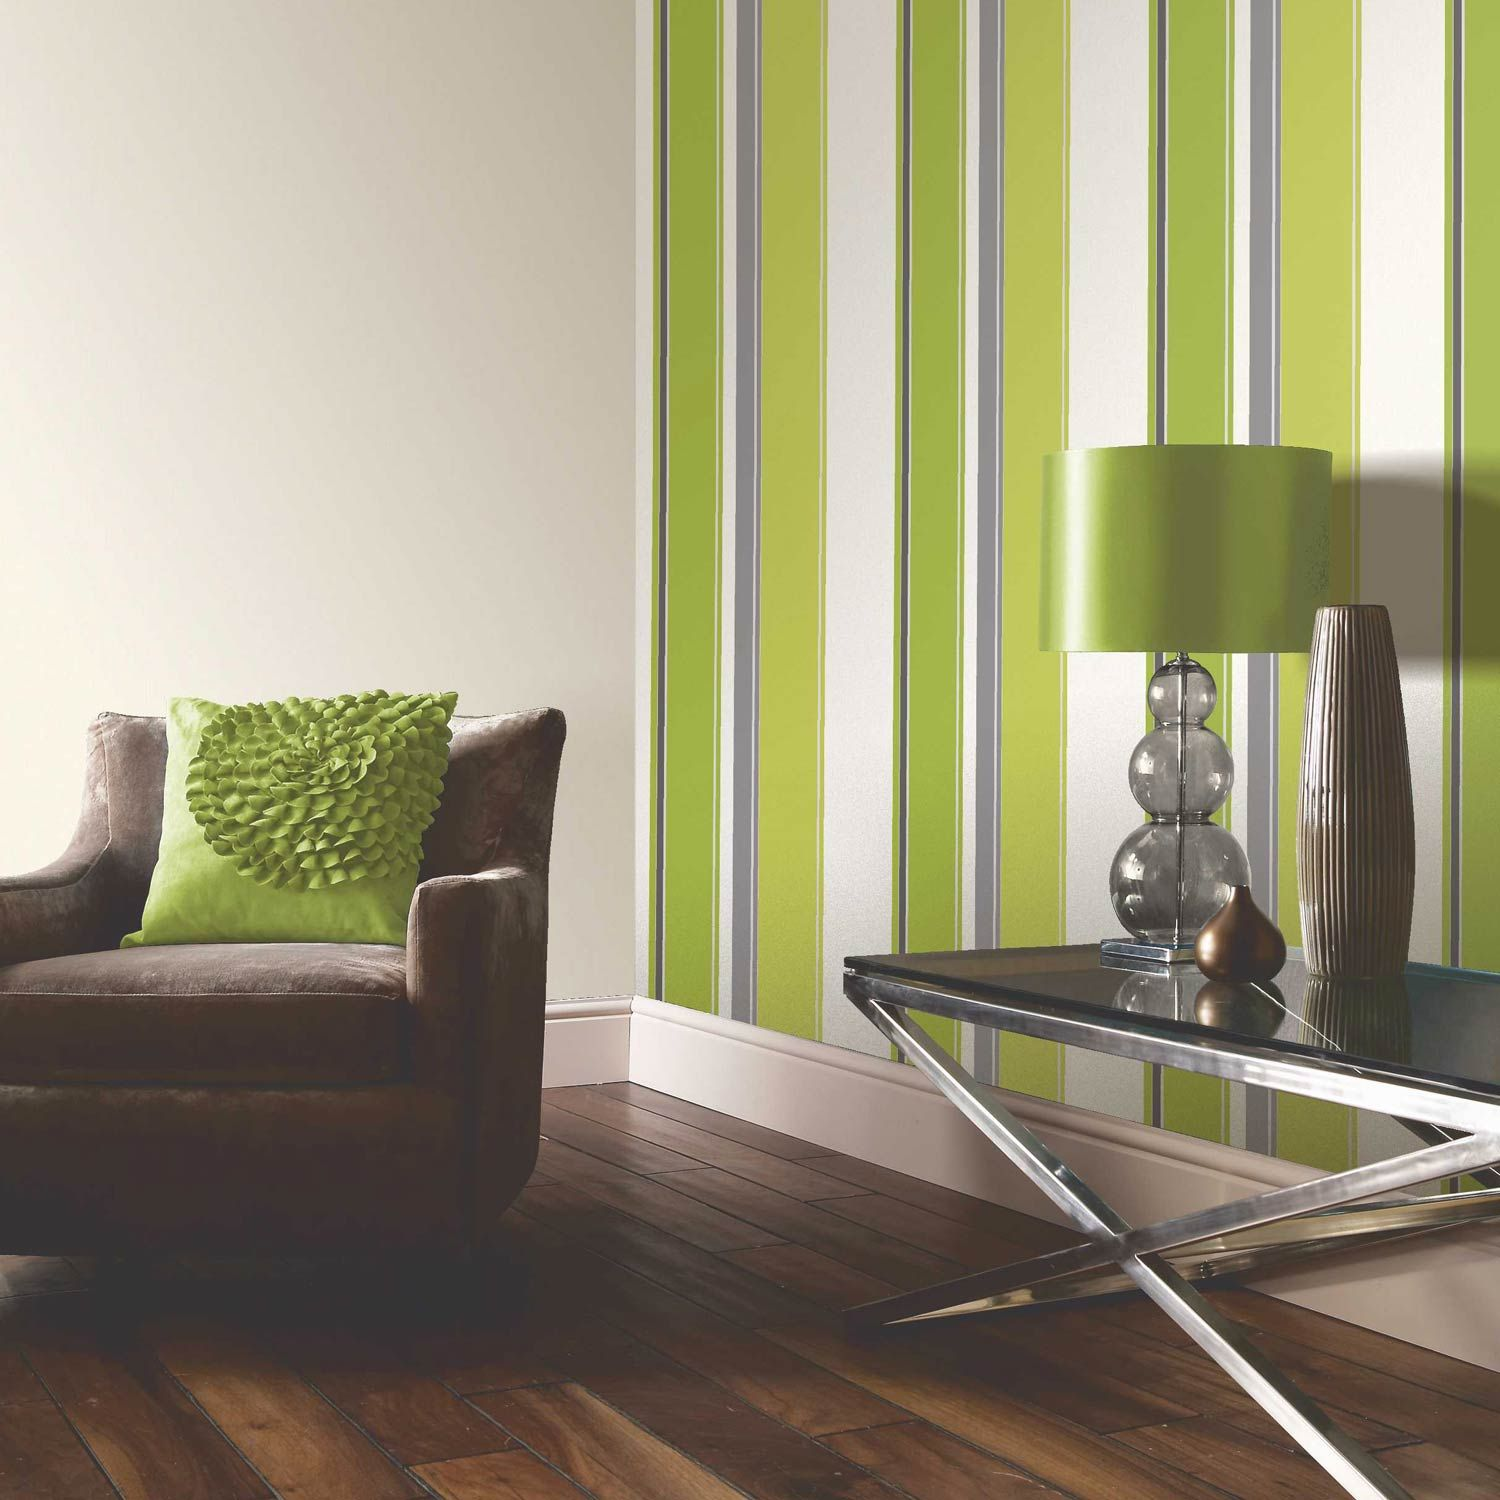 Buy the Carina Lime Green Striped Wallpaper at The Range